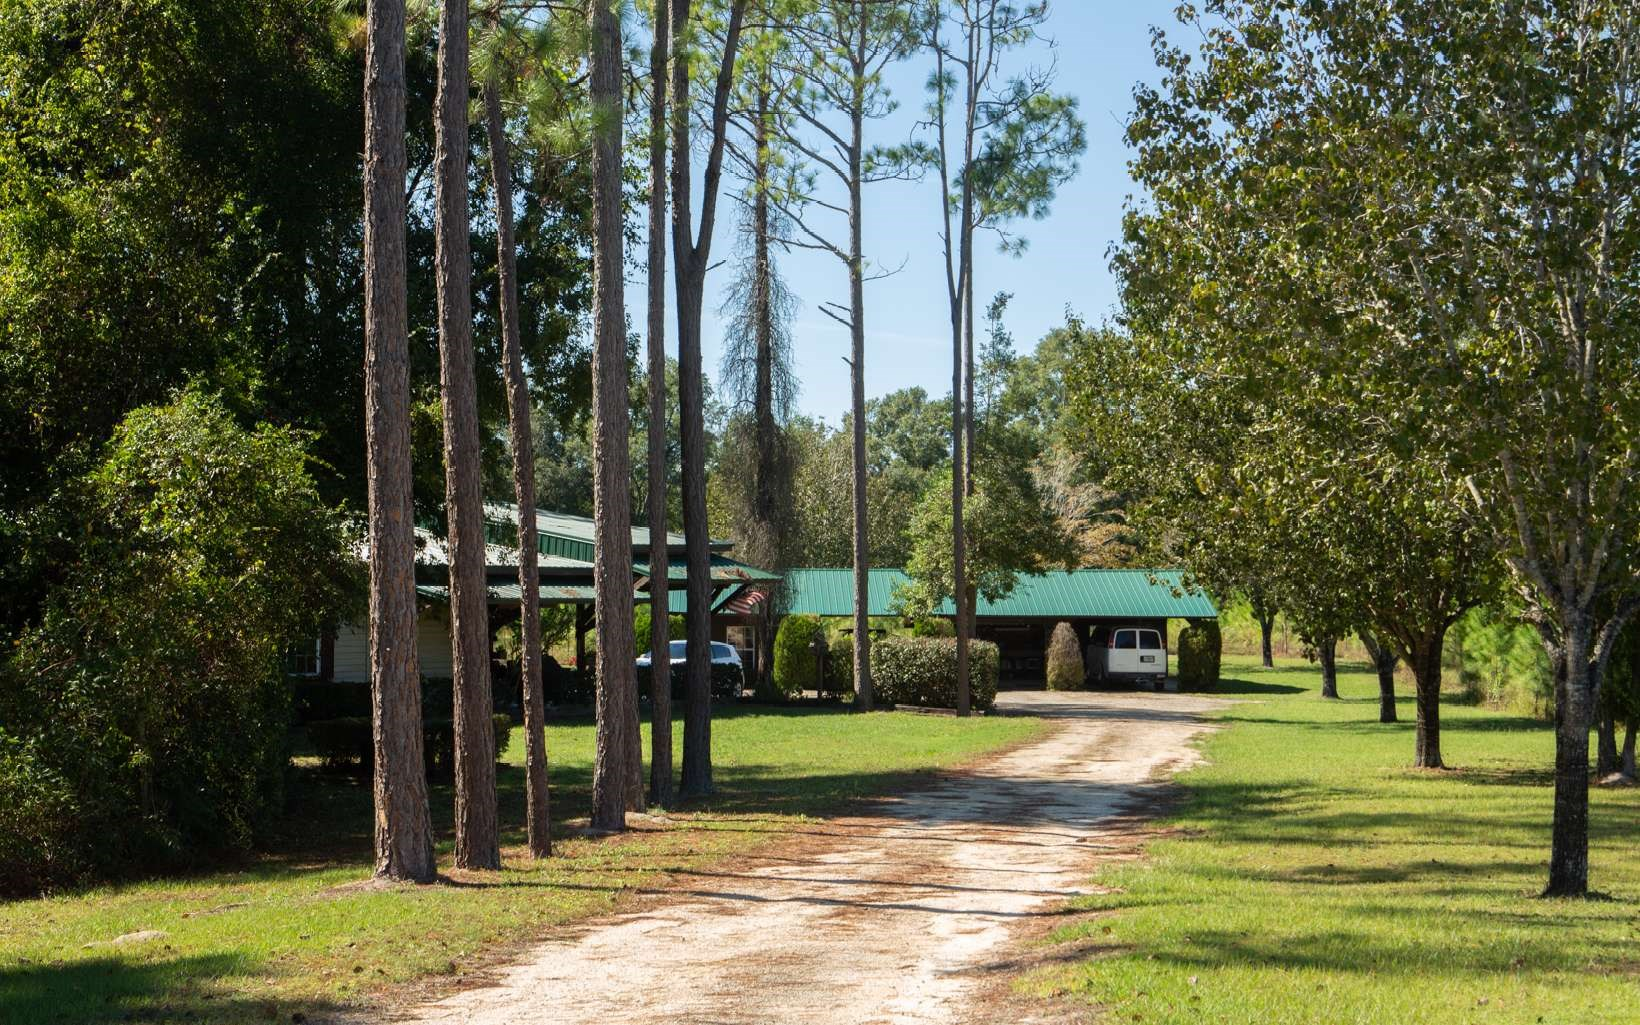 40 Acre private and secluded property